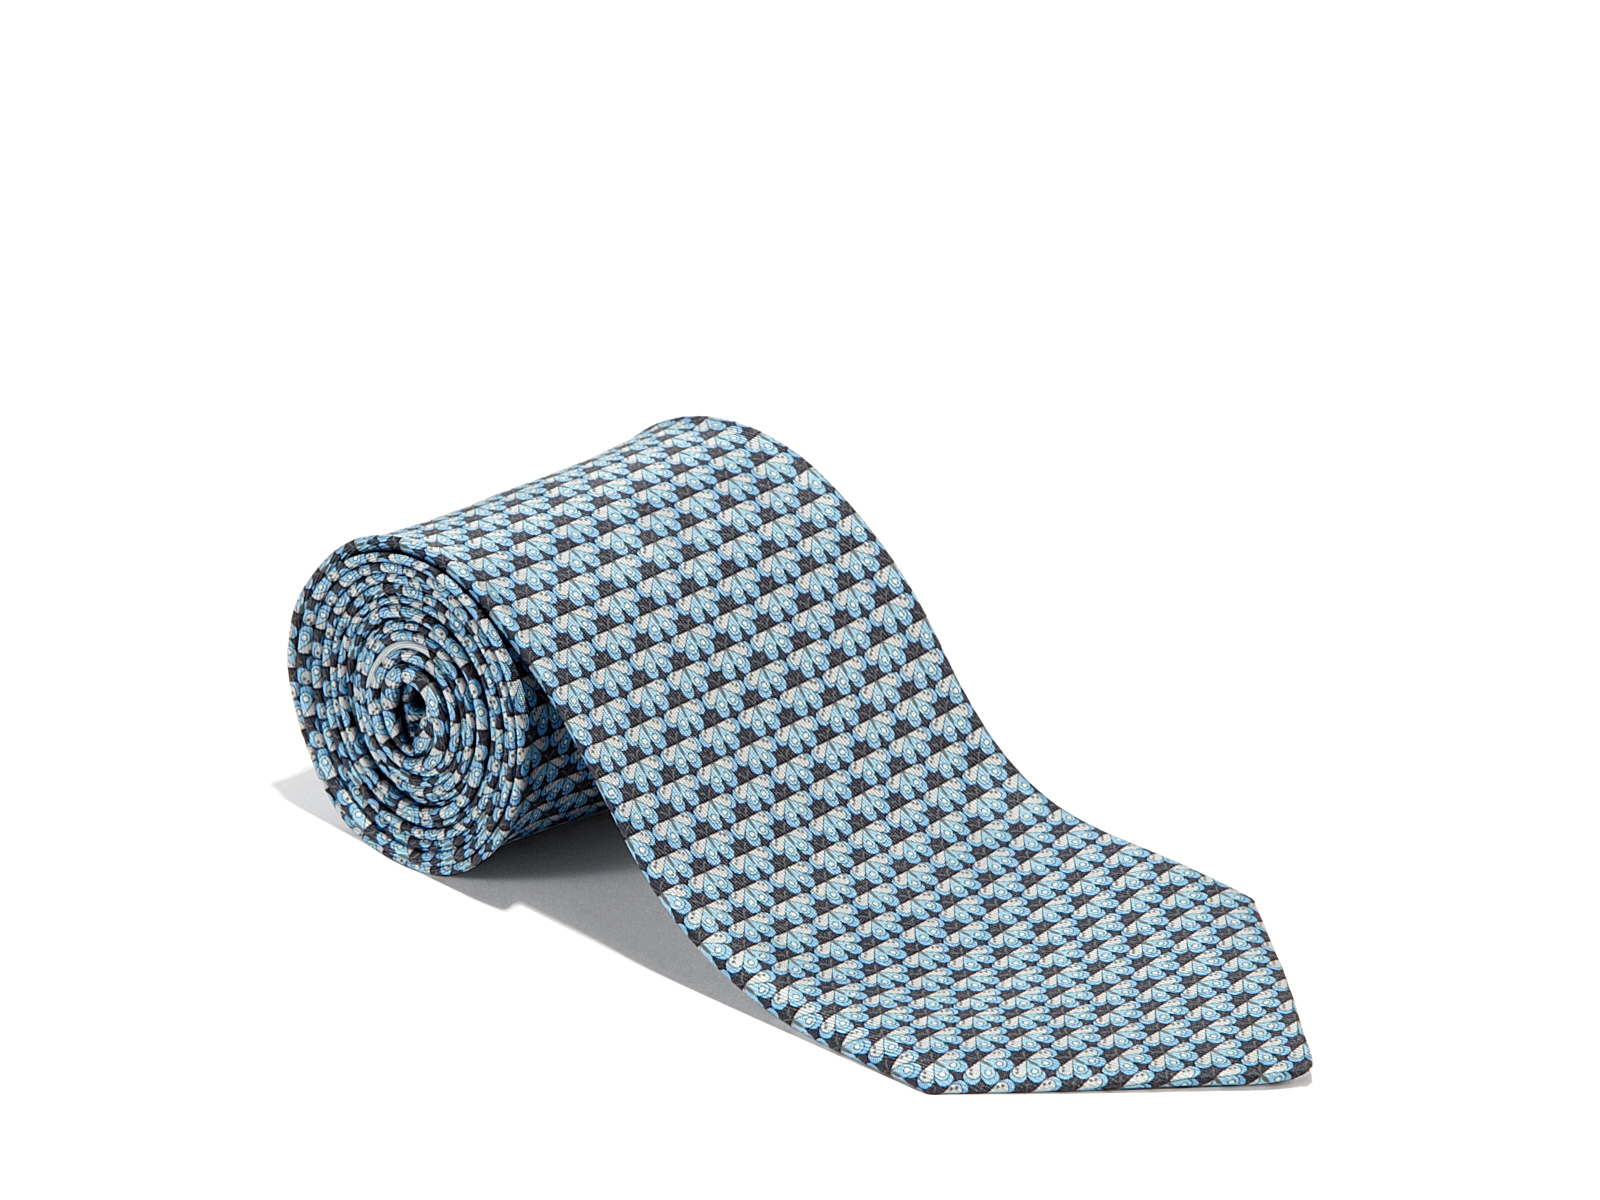 e6a07c9c9de1 Lyst - Ferragamo Geometric Butterfly Printed Tie in Gray for Men